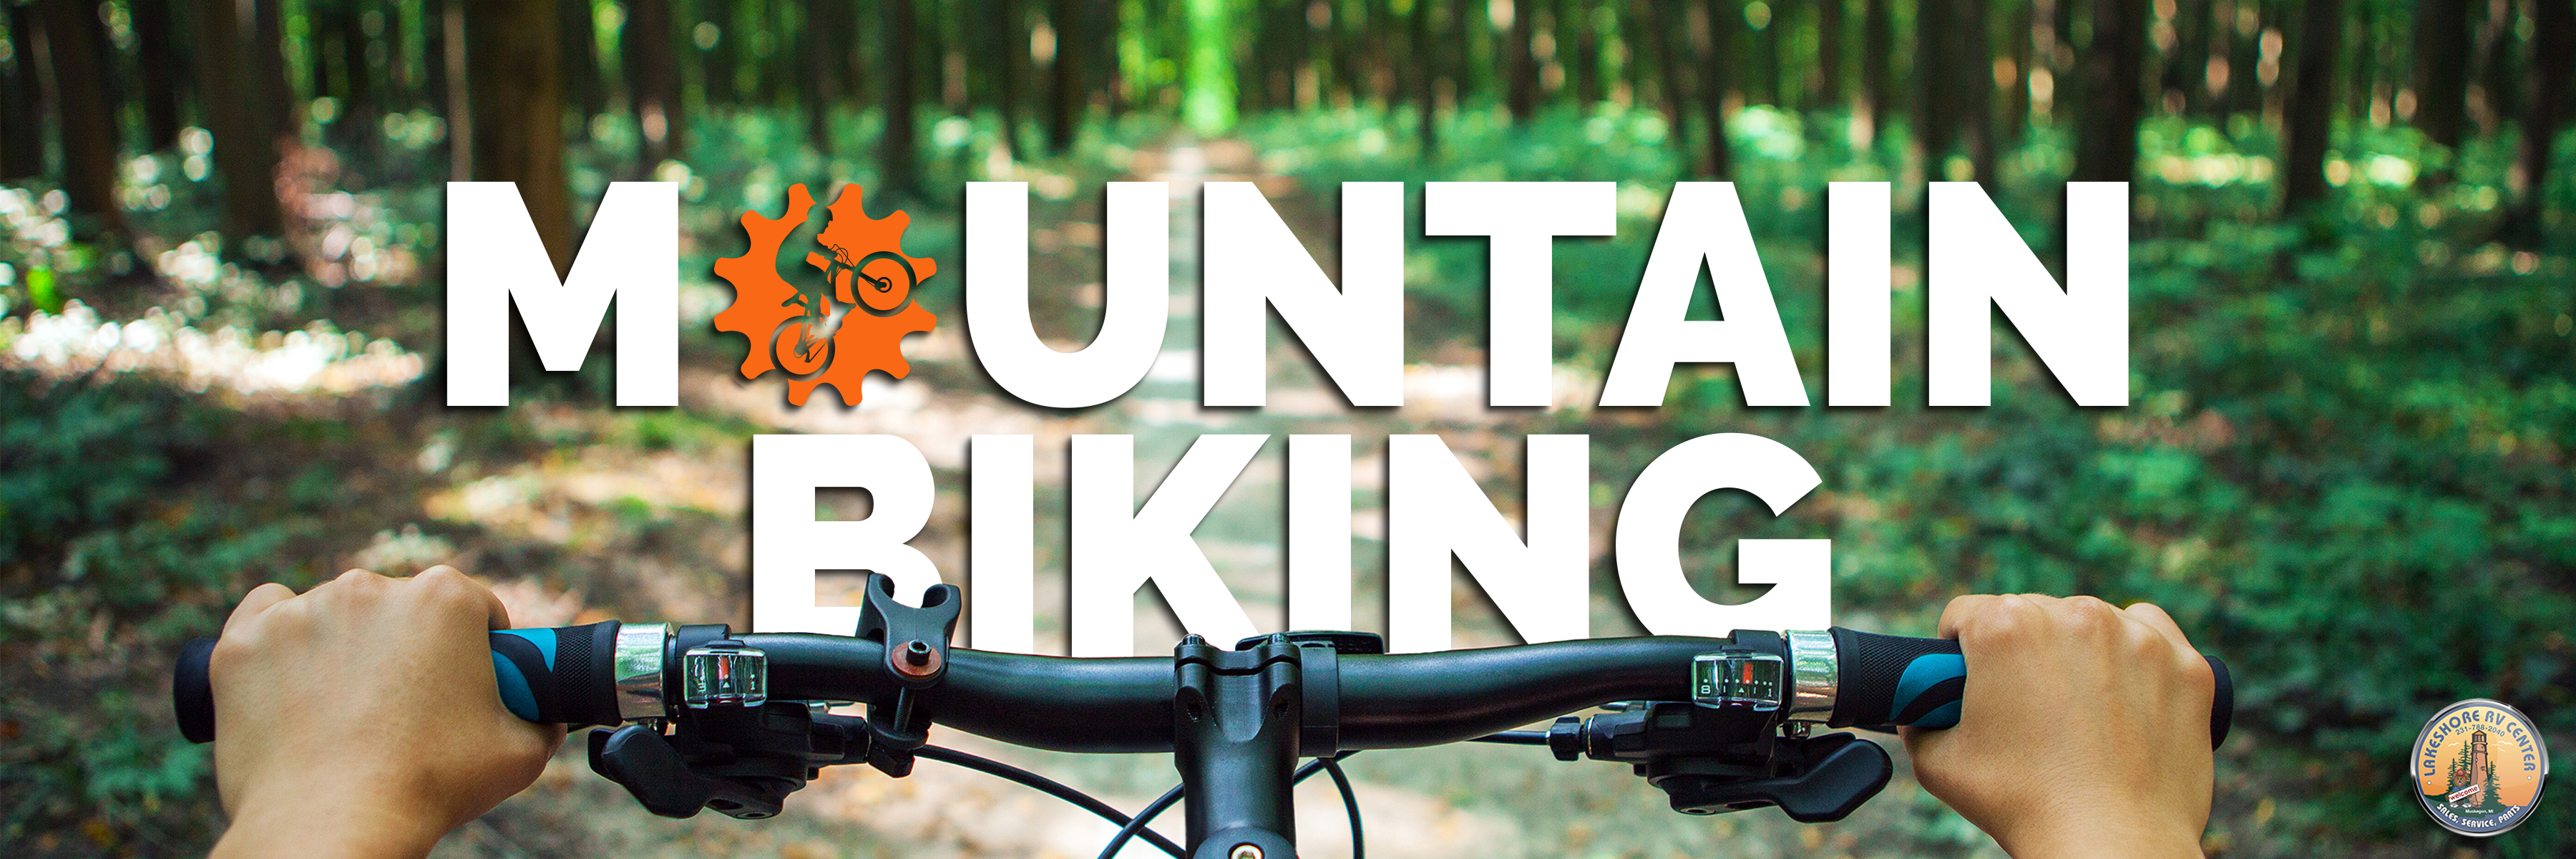 mt biking banner